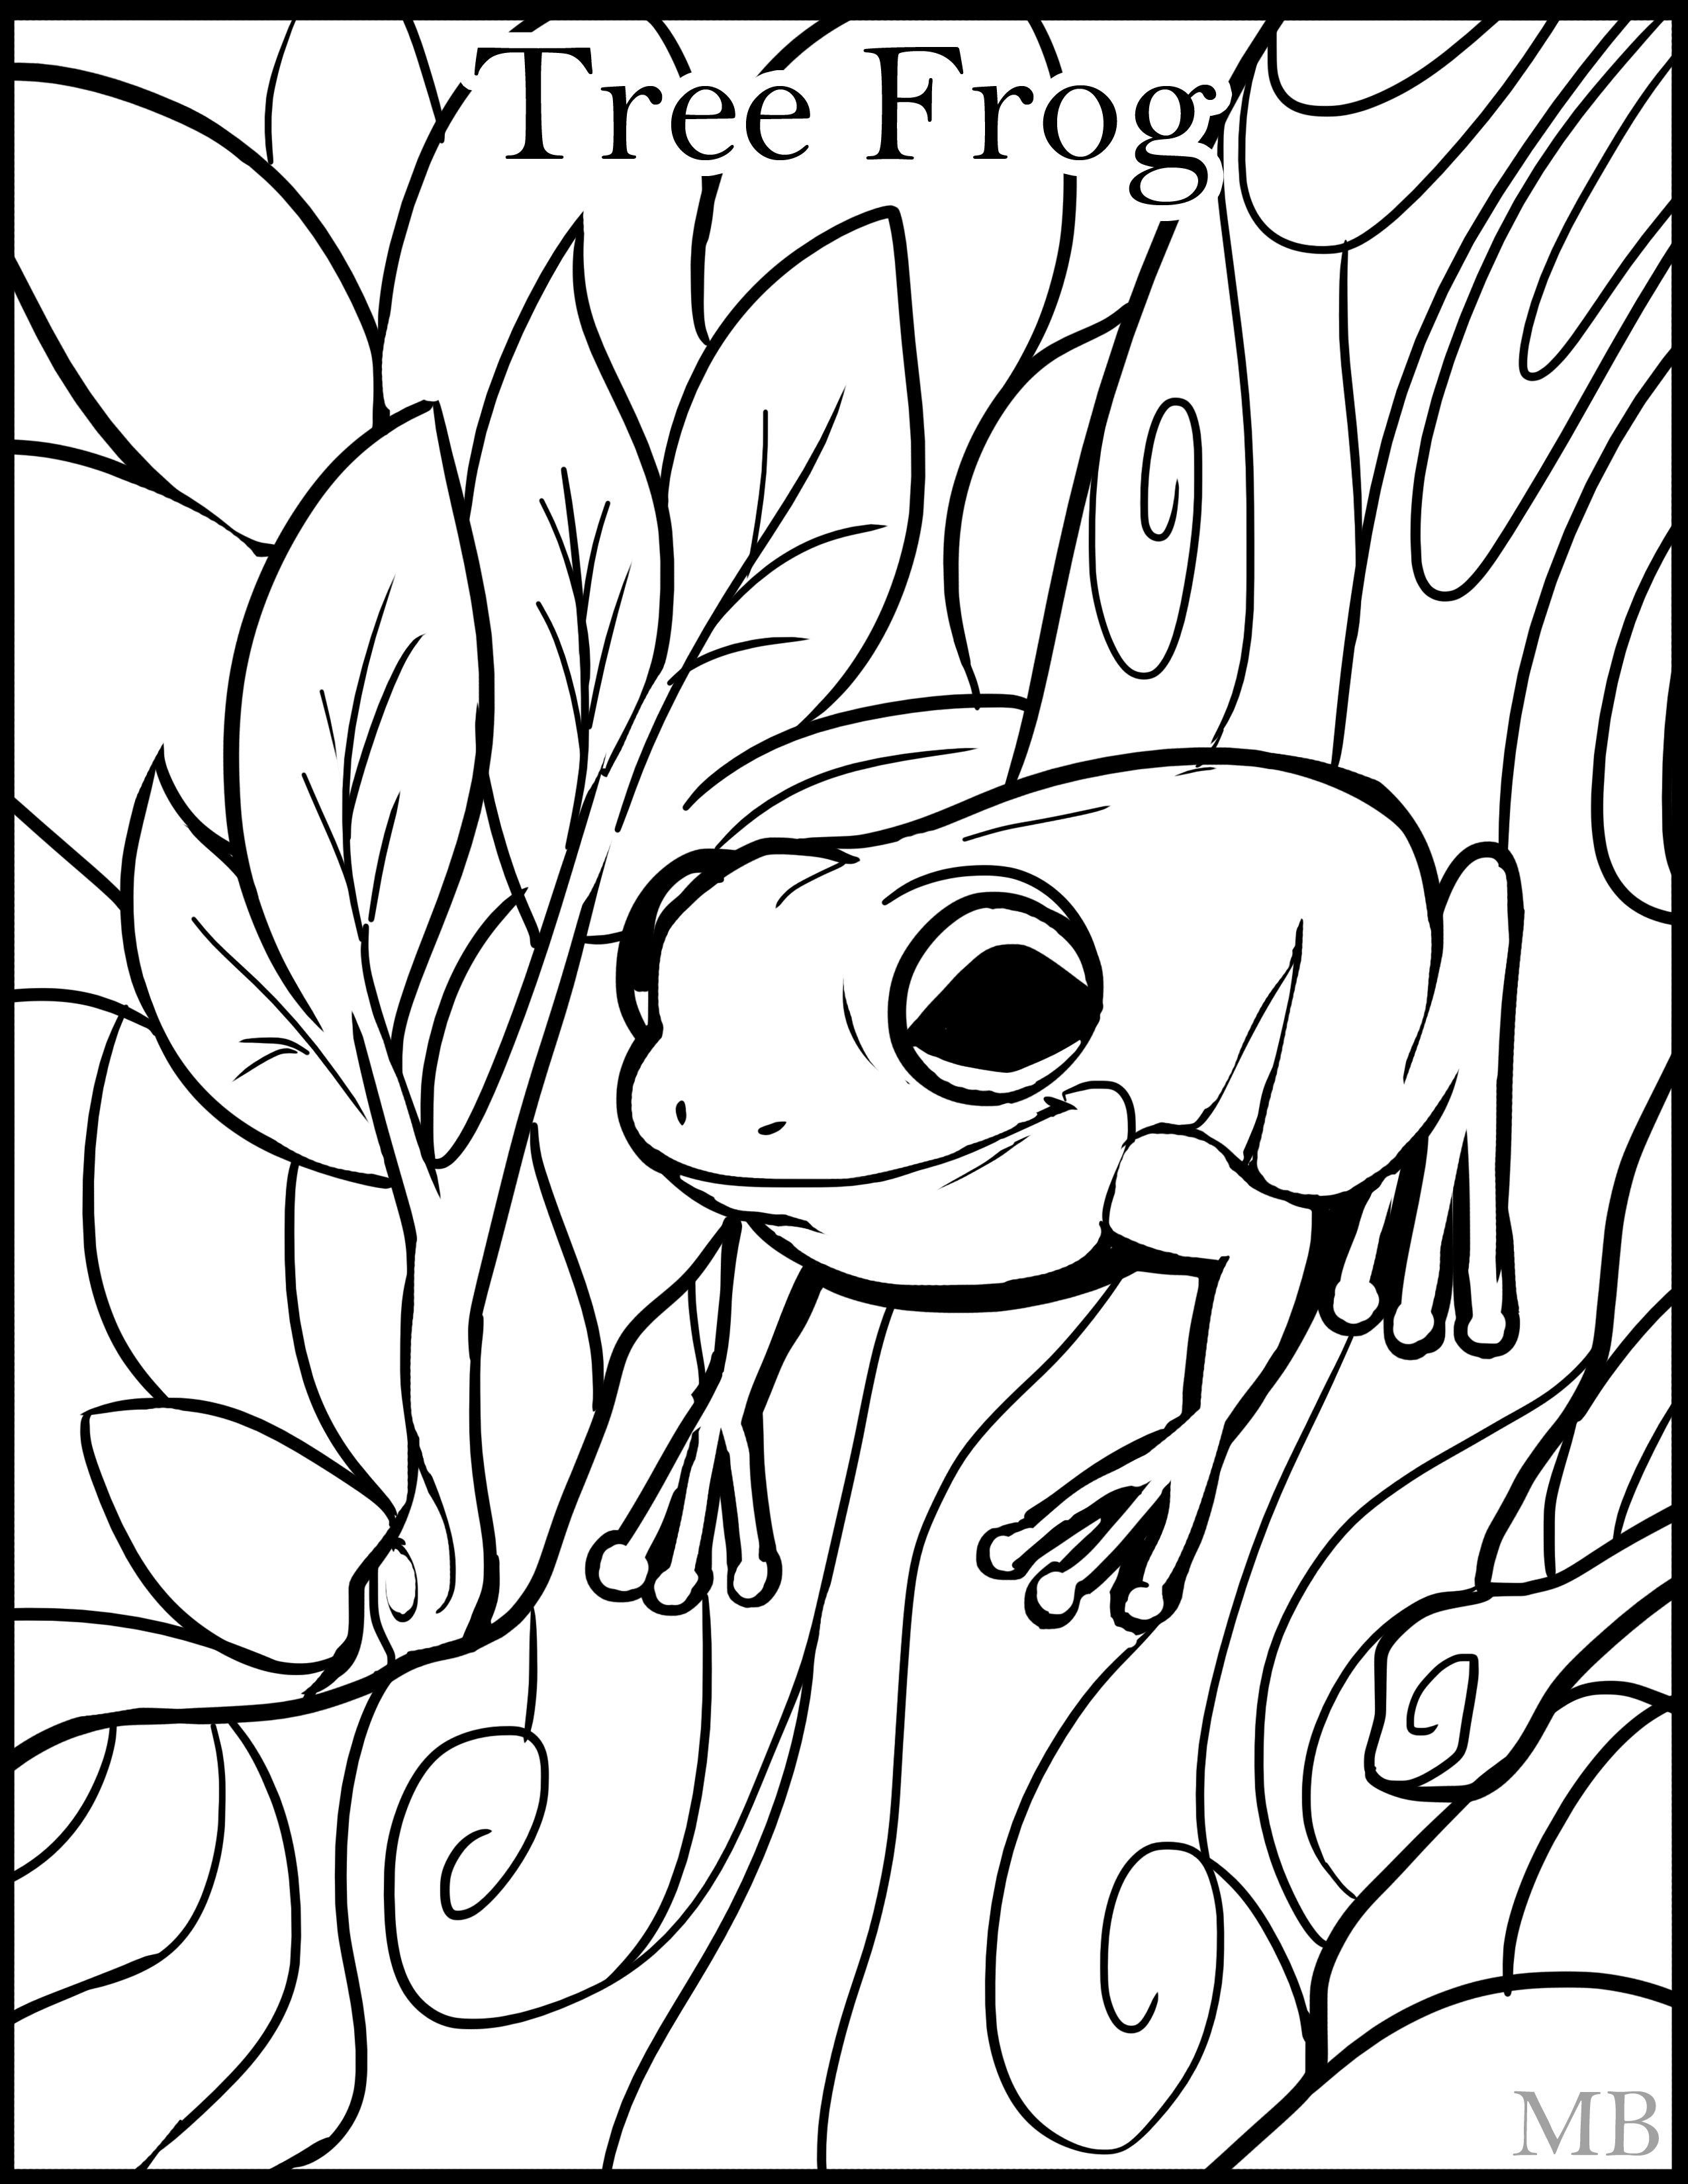 Tree Frog Coloring Pages | Clipart Panda - Free Clipart Images